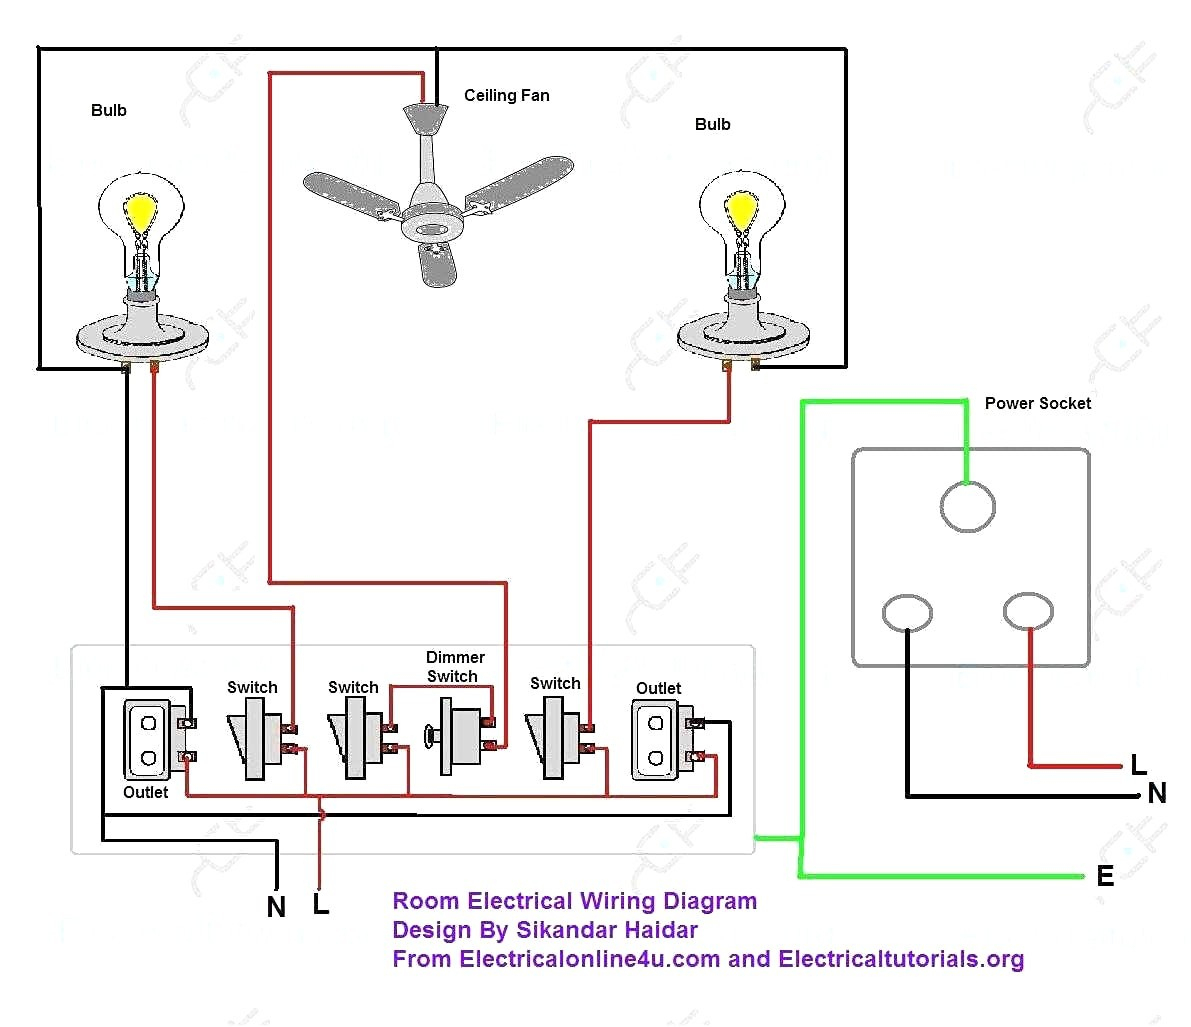 Basic Outlet Wiring - Wiring Diagrams Hubs - Outlet Wiring Diagram